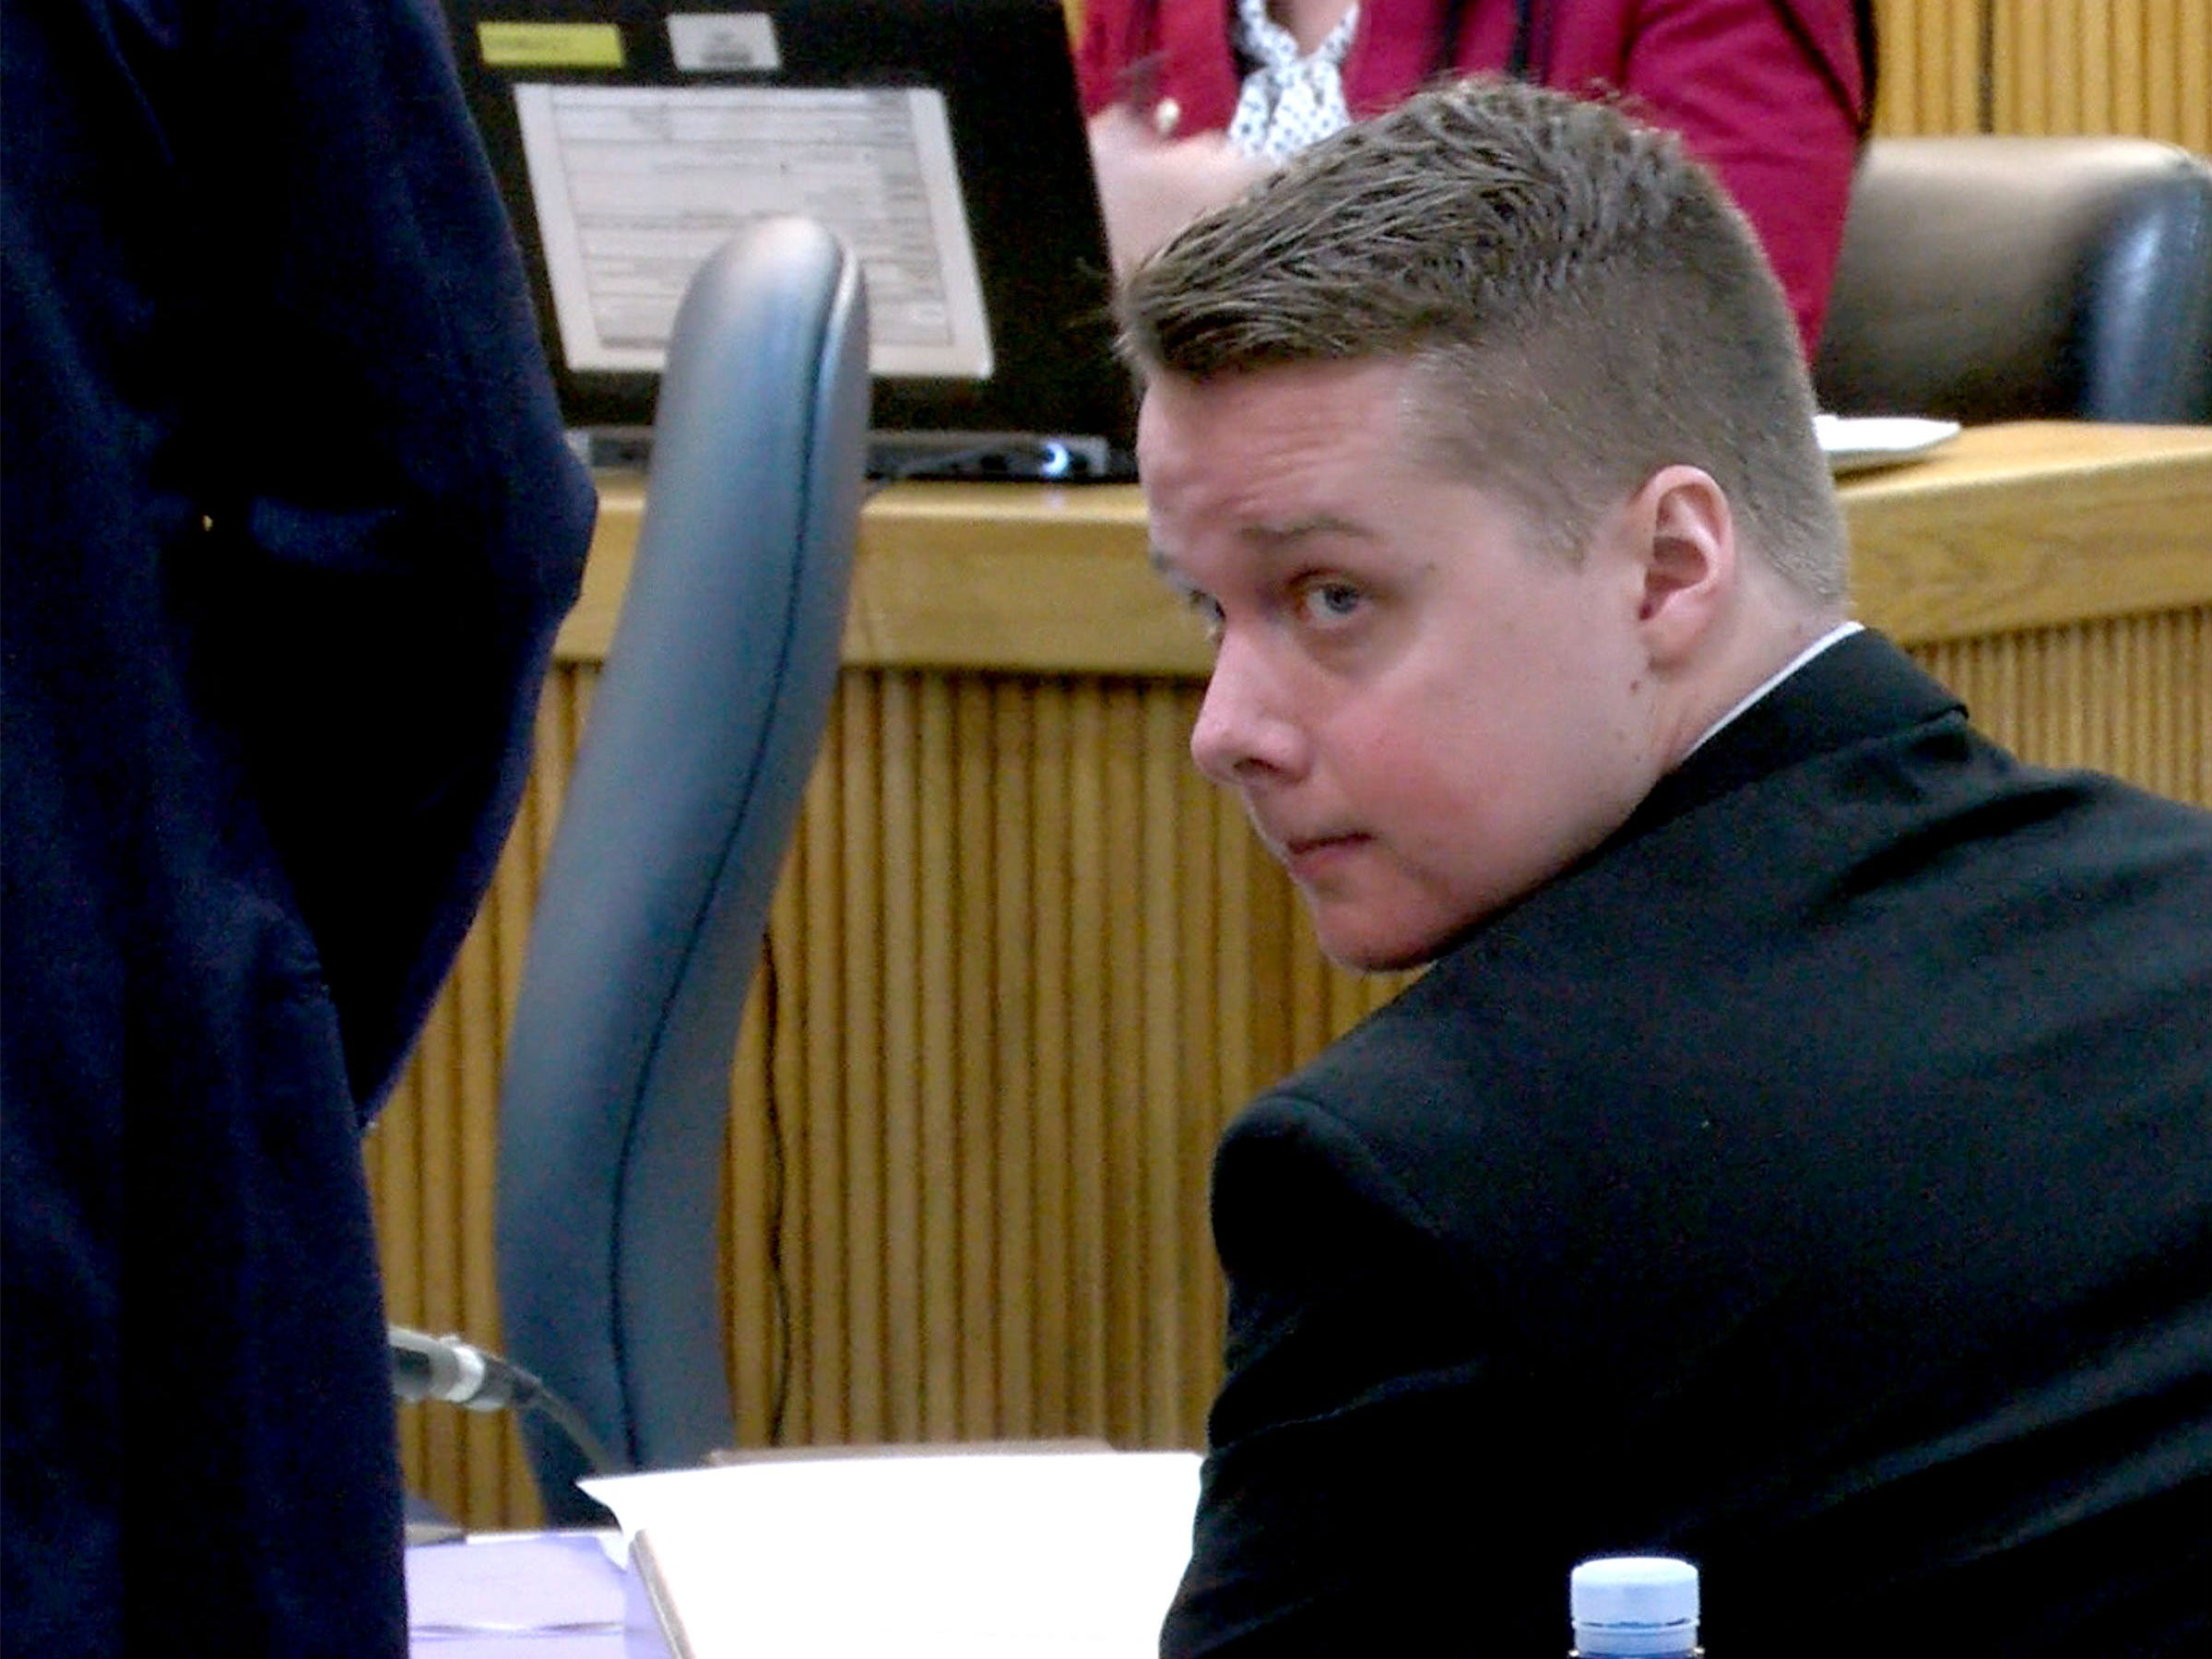 Liam McAtasney looks over his shoulder to  his family in State Superior Court in Freehold Tuesday, February 5, 2019.  He is on trial for the murder of Sarah Stern.